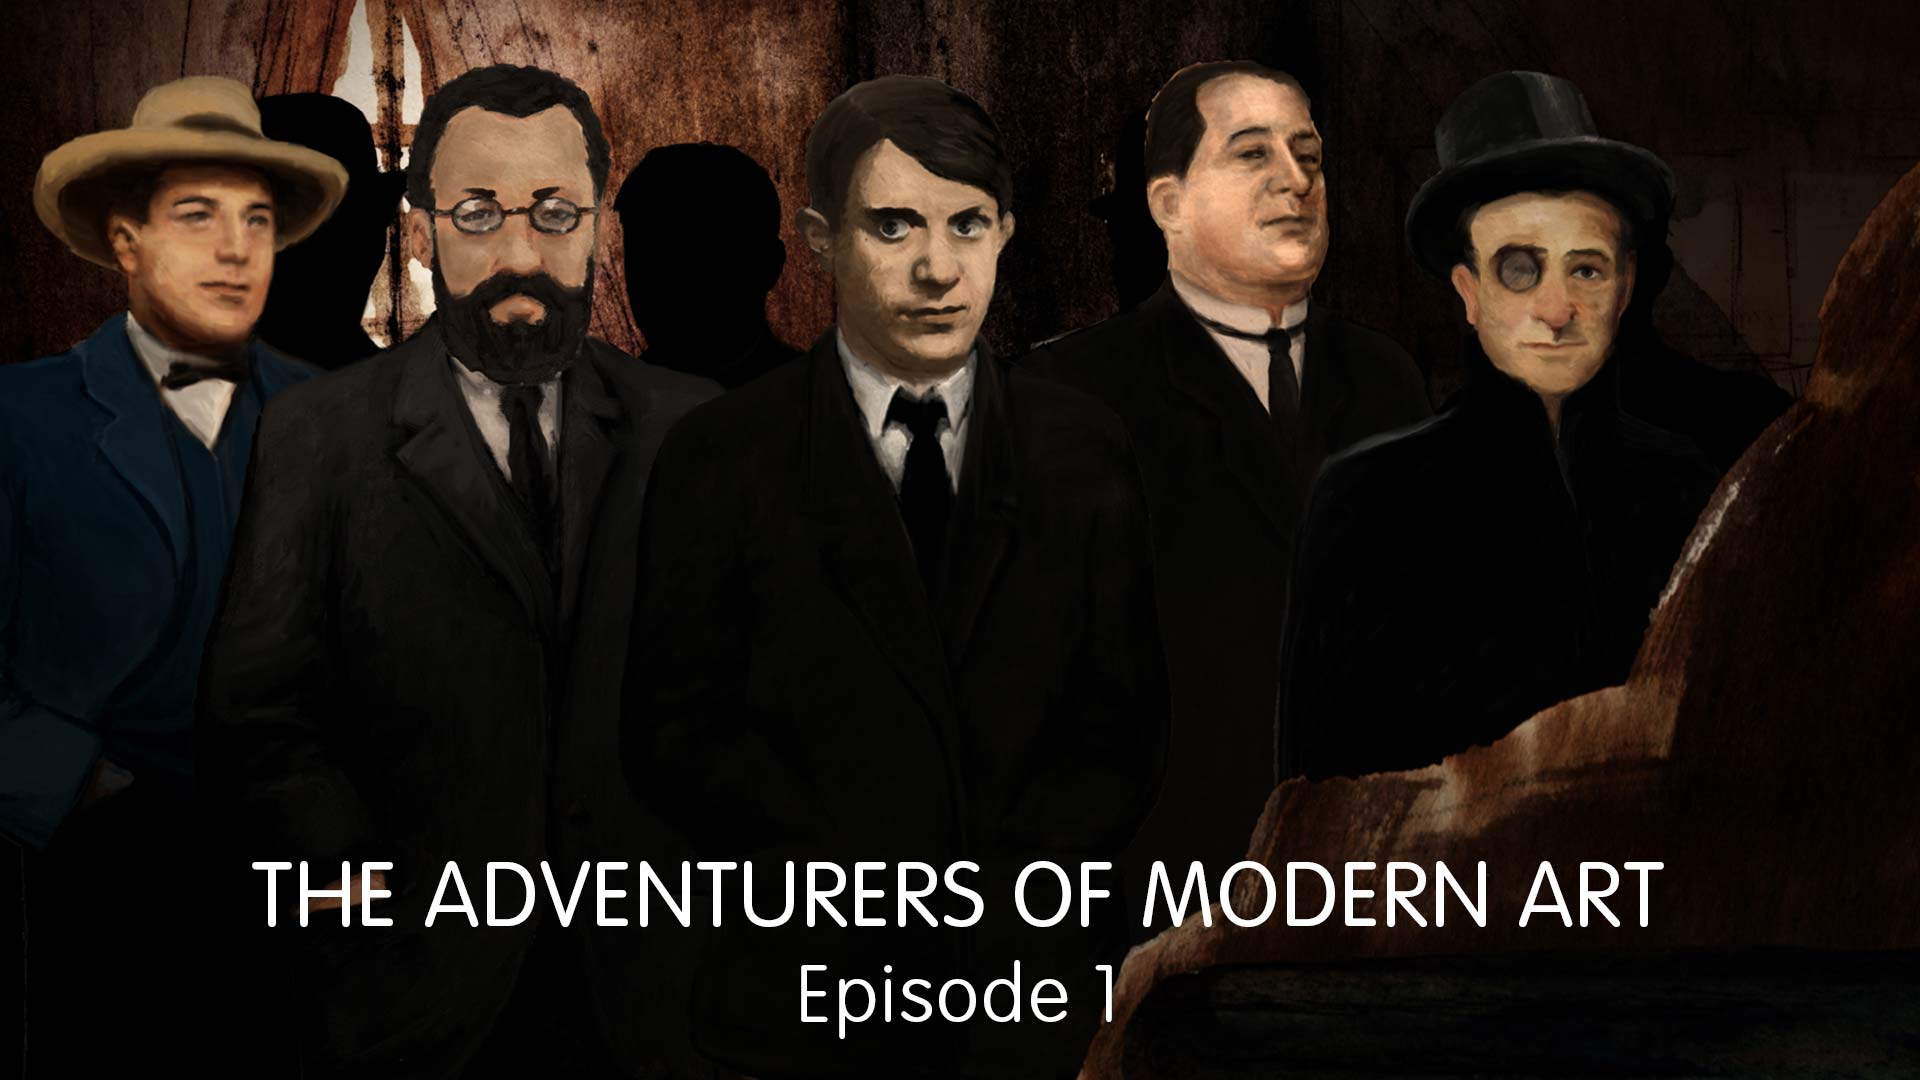 The Adventurers of Modern Art - Ep 1 - image